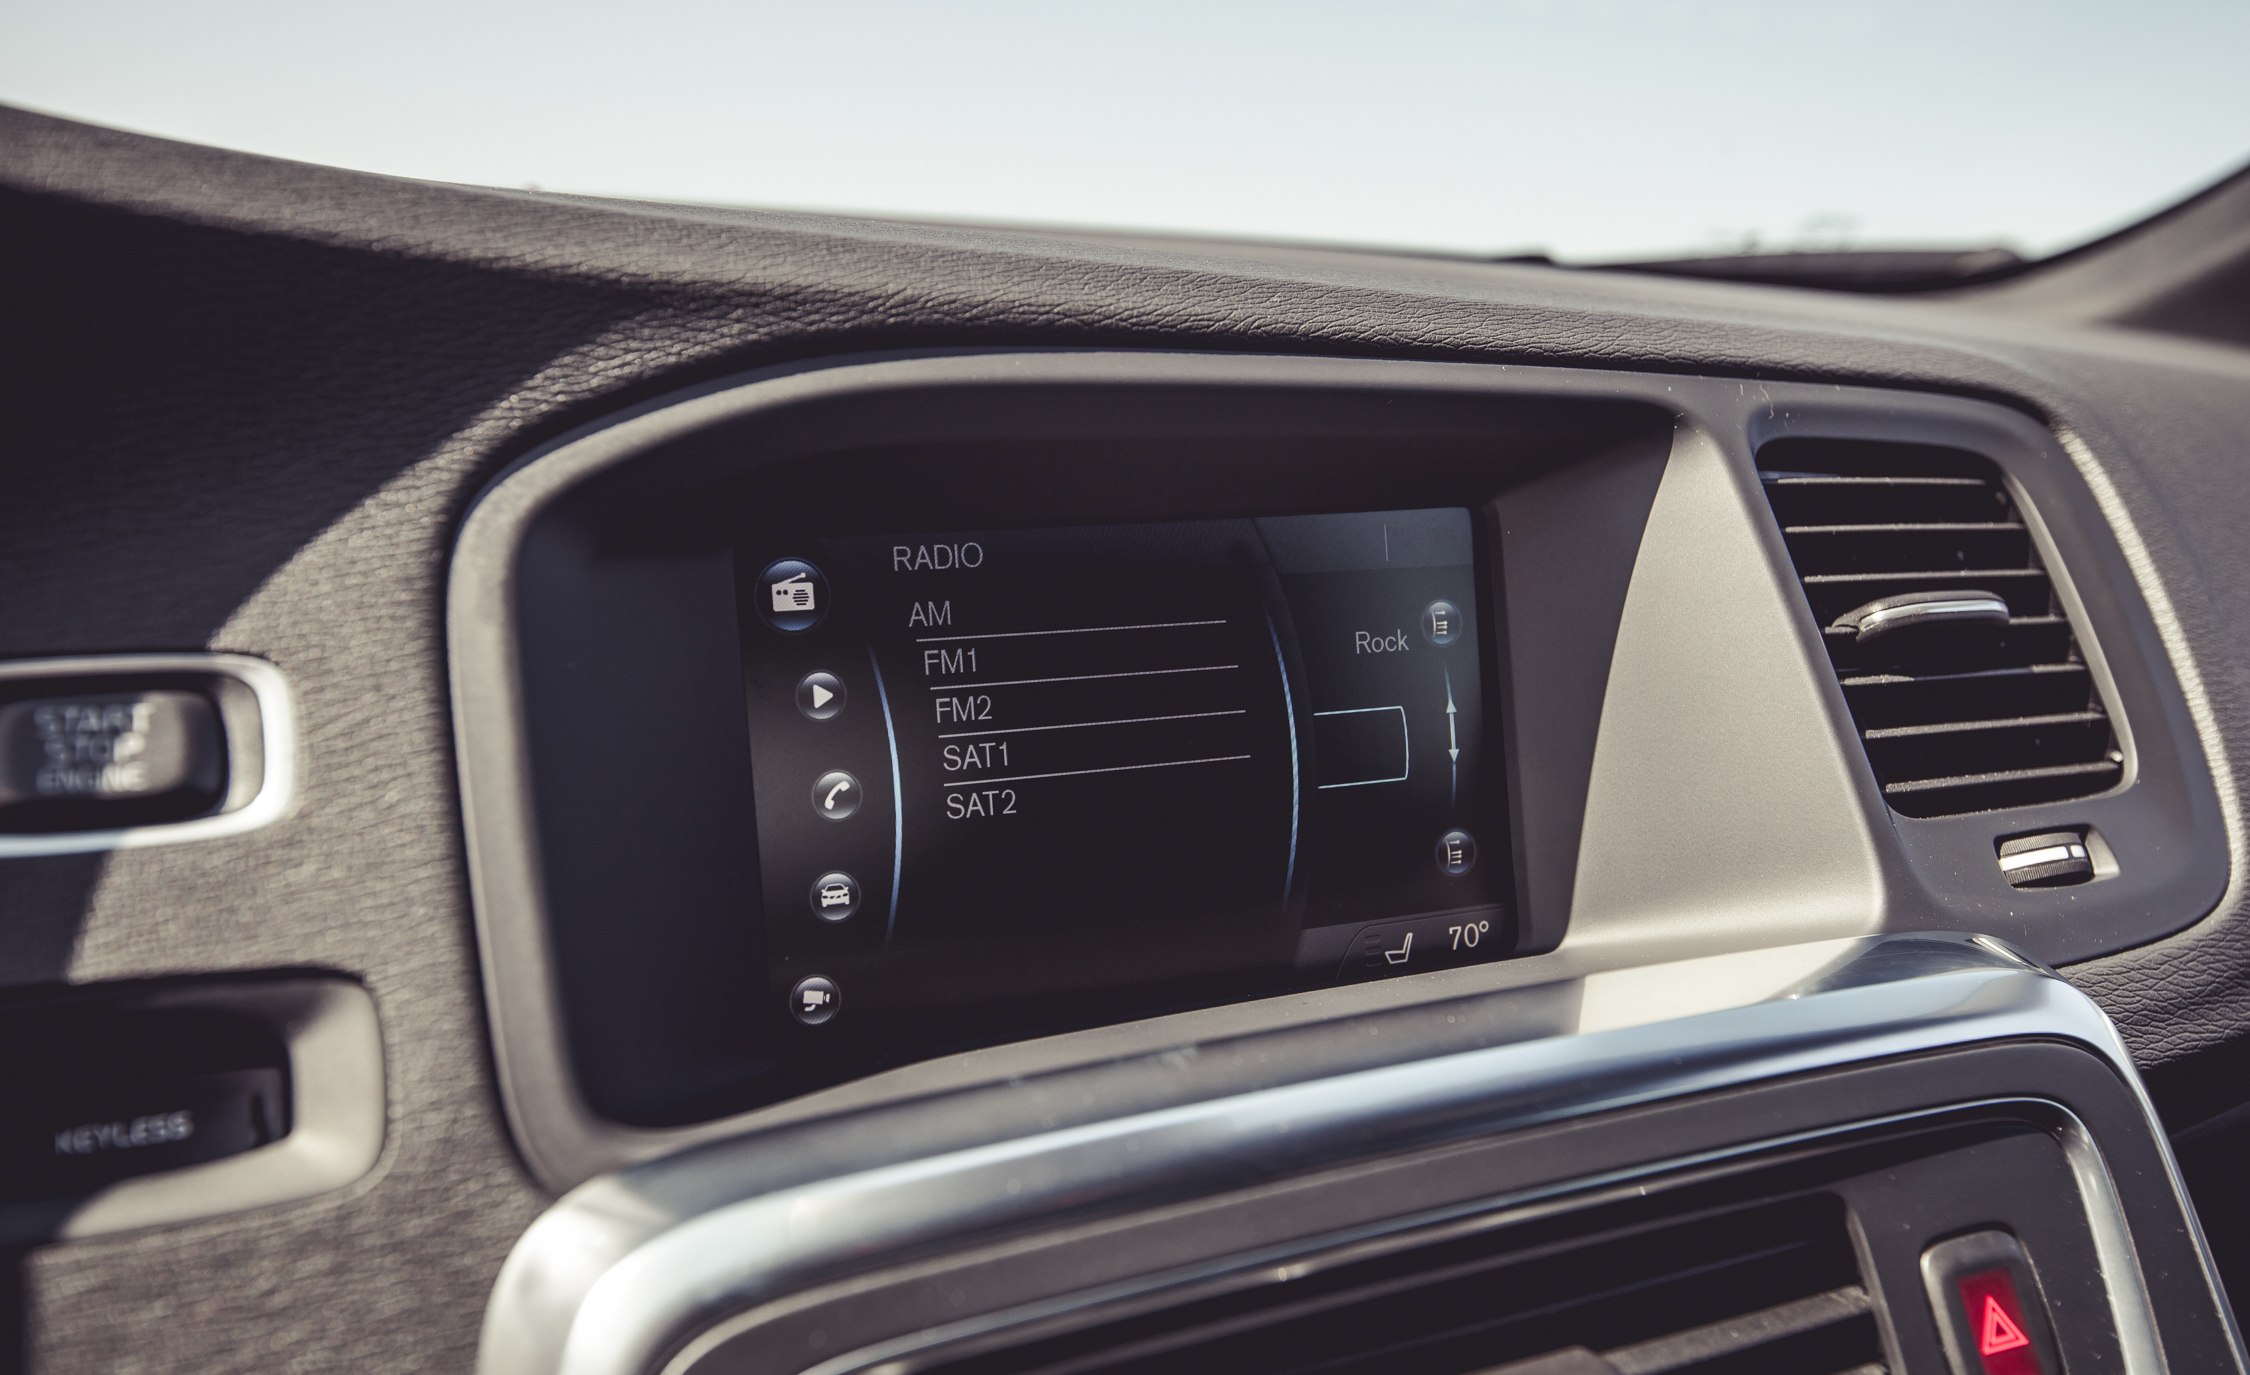 2015 Volvo V60 Infotainment Display (Photo 14 of 38)